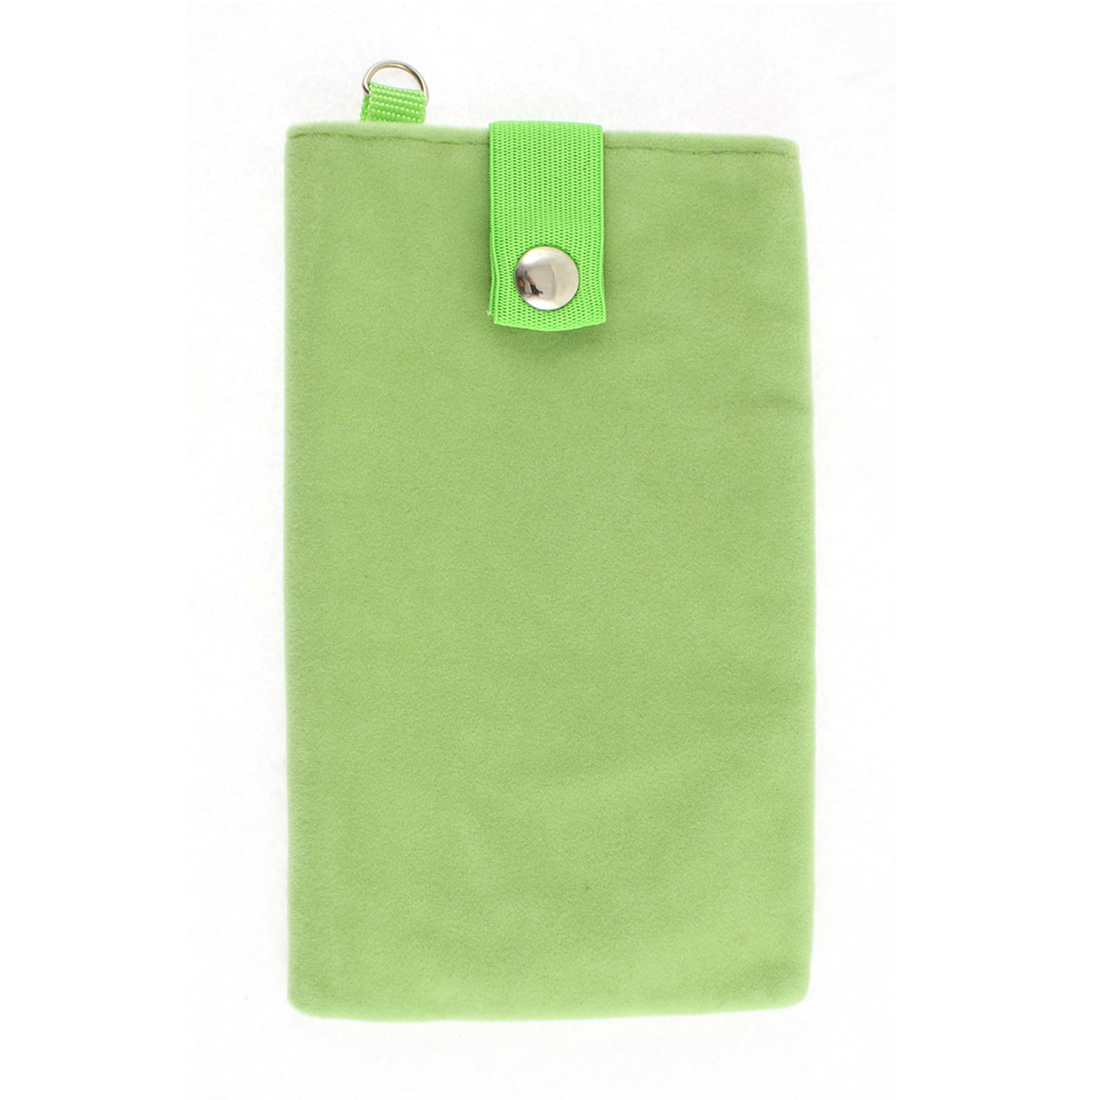 Velvet Magnetic Clasp Button Cell Phone Pouch Sleeve Bag Light Green 16x9.5cm